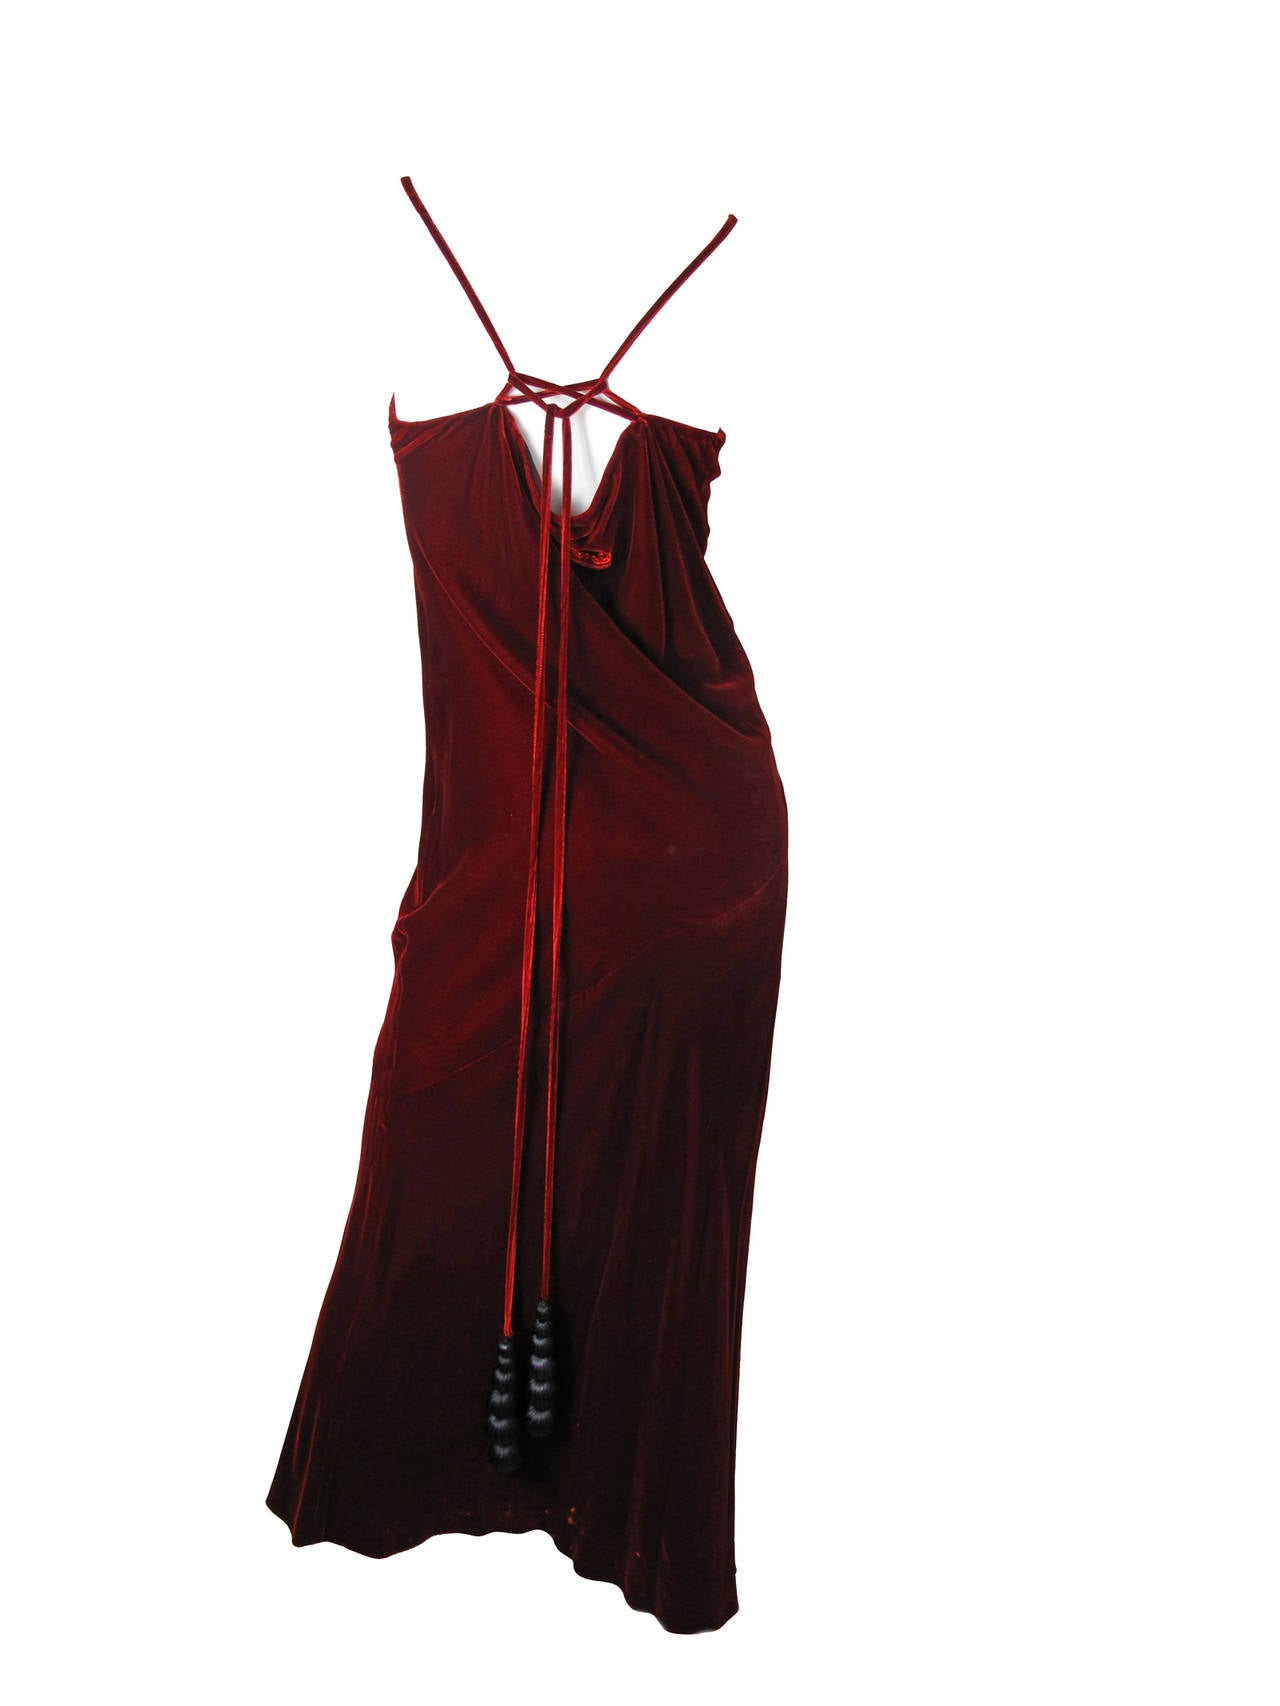 1990s Jean Paul Gaultier Velvet Gown with Large Fabric Beads 4